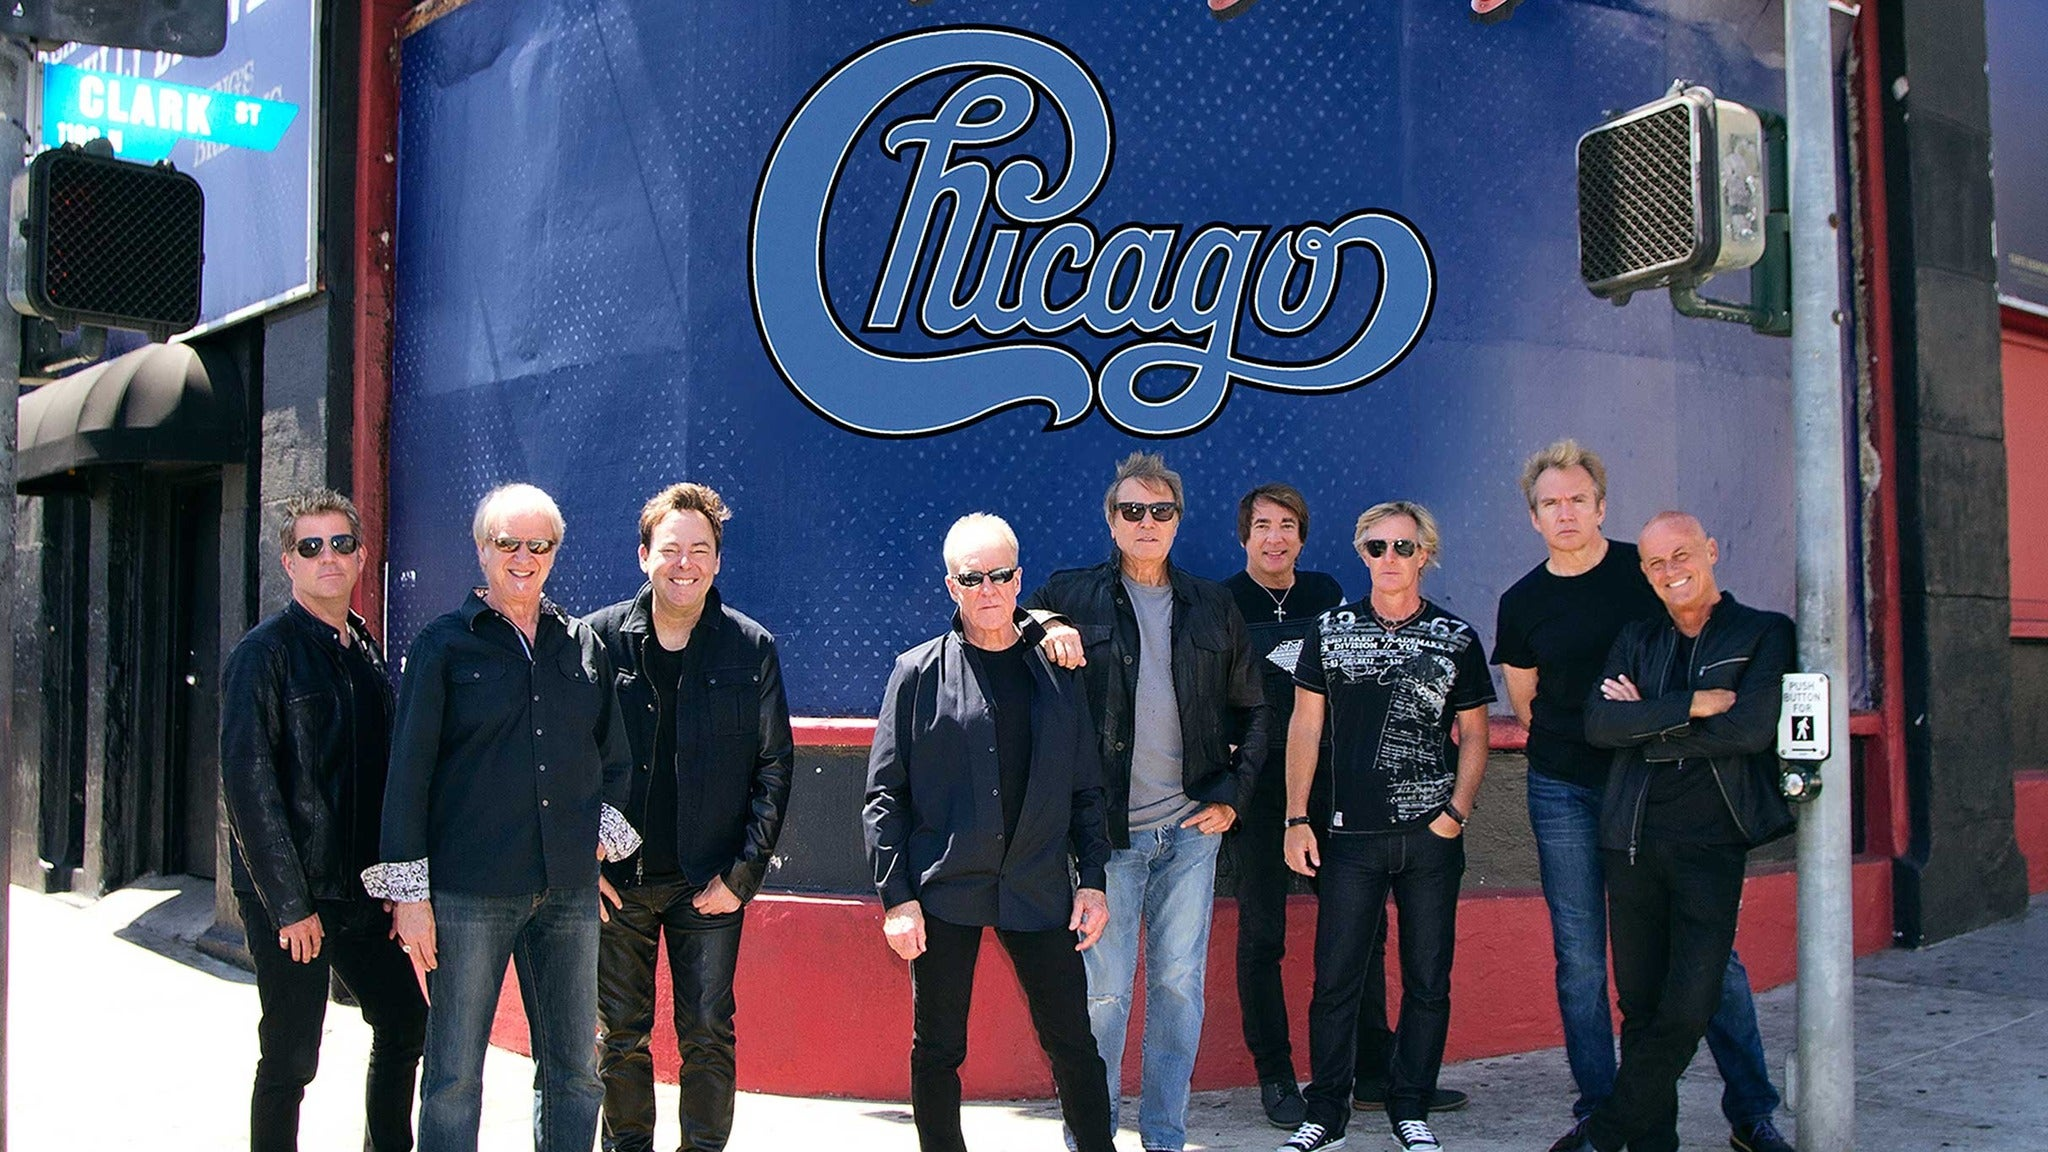 Chicago & the Doobie Brothers at The Forum